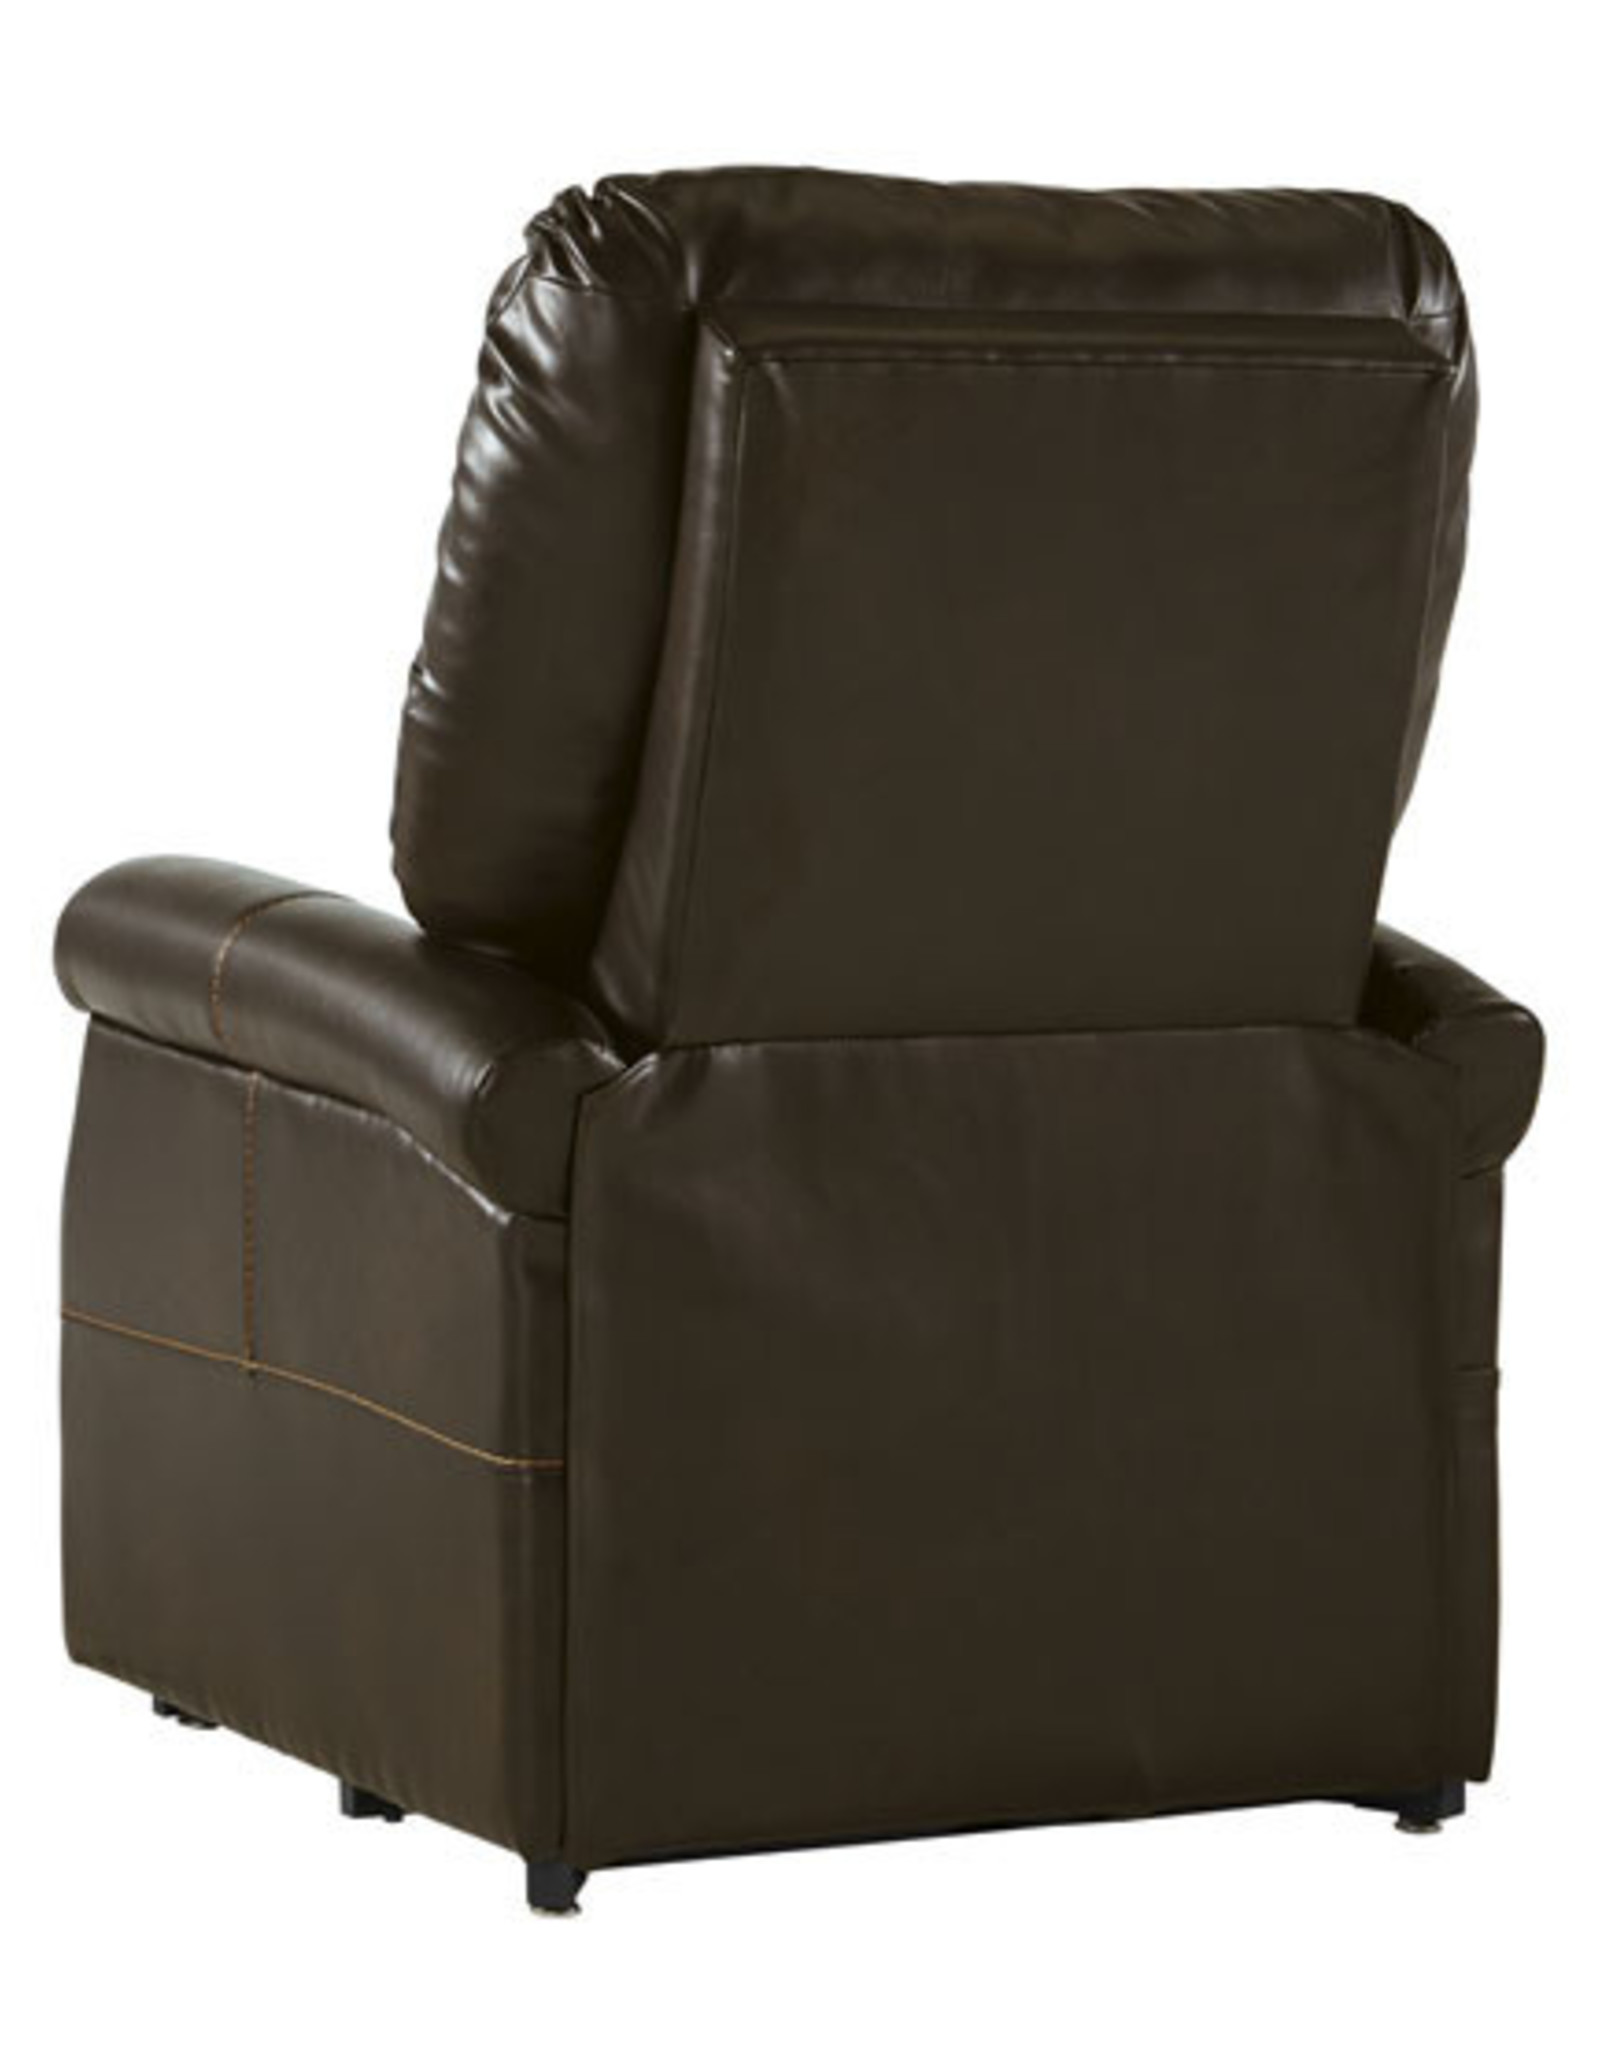 Markridge Power Lift Recliner (Chocolate) - Online Only